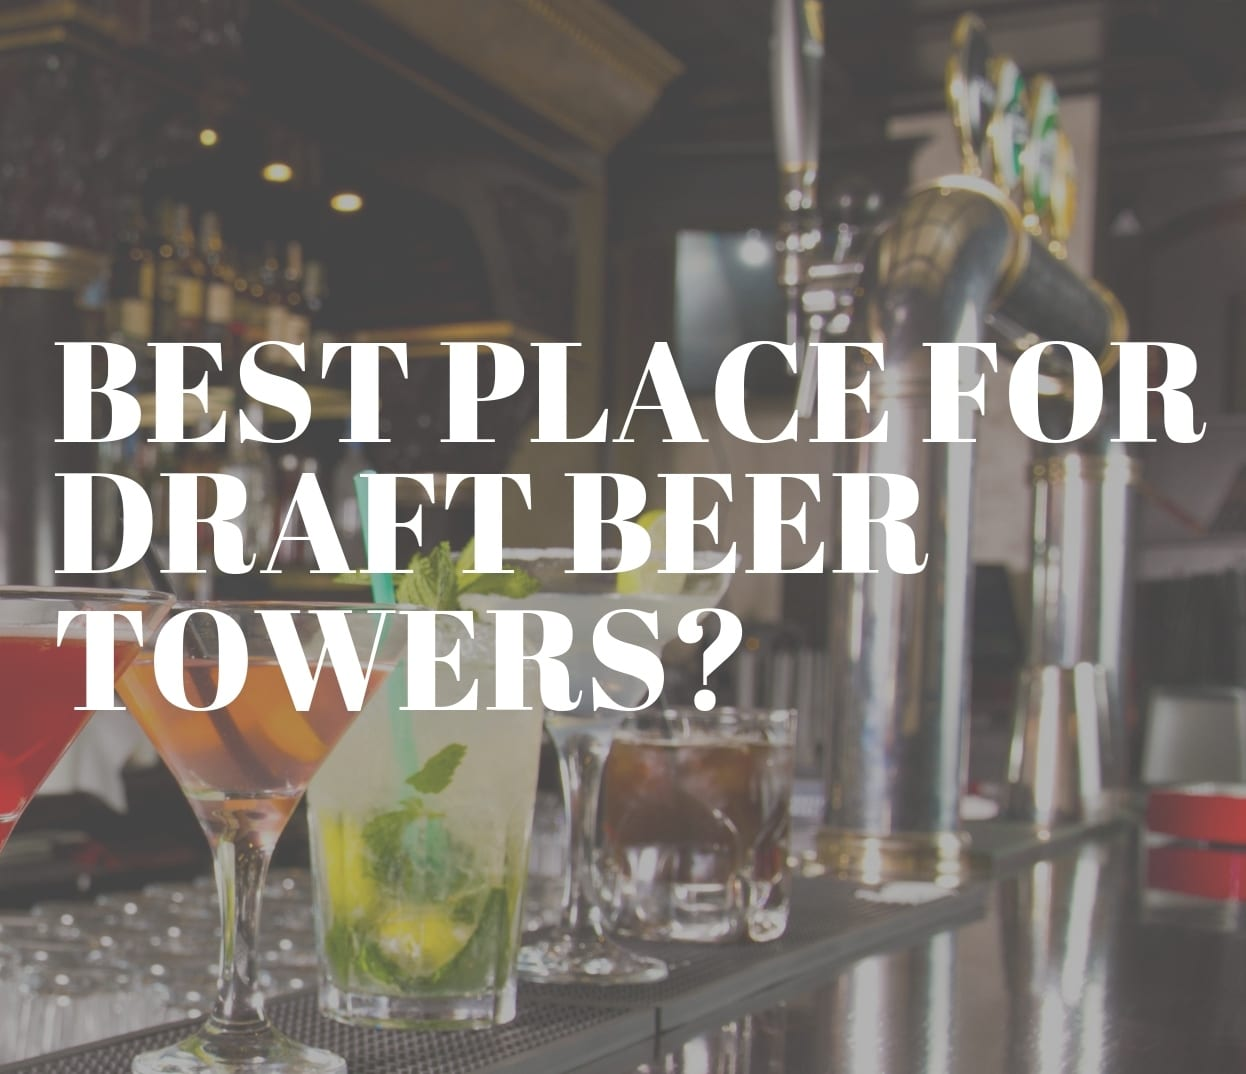 BEST-PLACE-FOR-DRAFT-BEER-TOWERS-TN